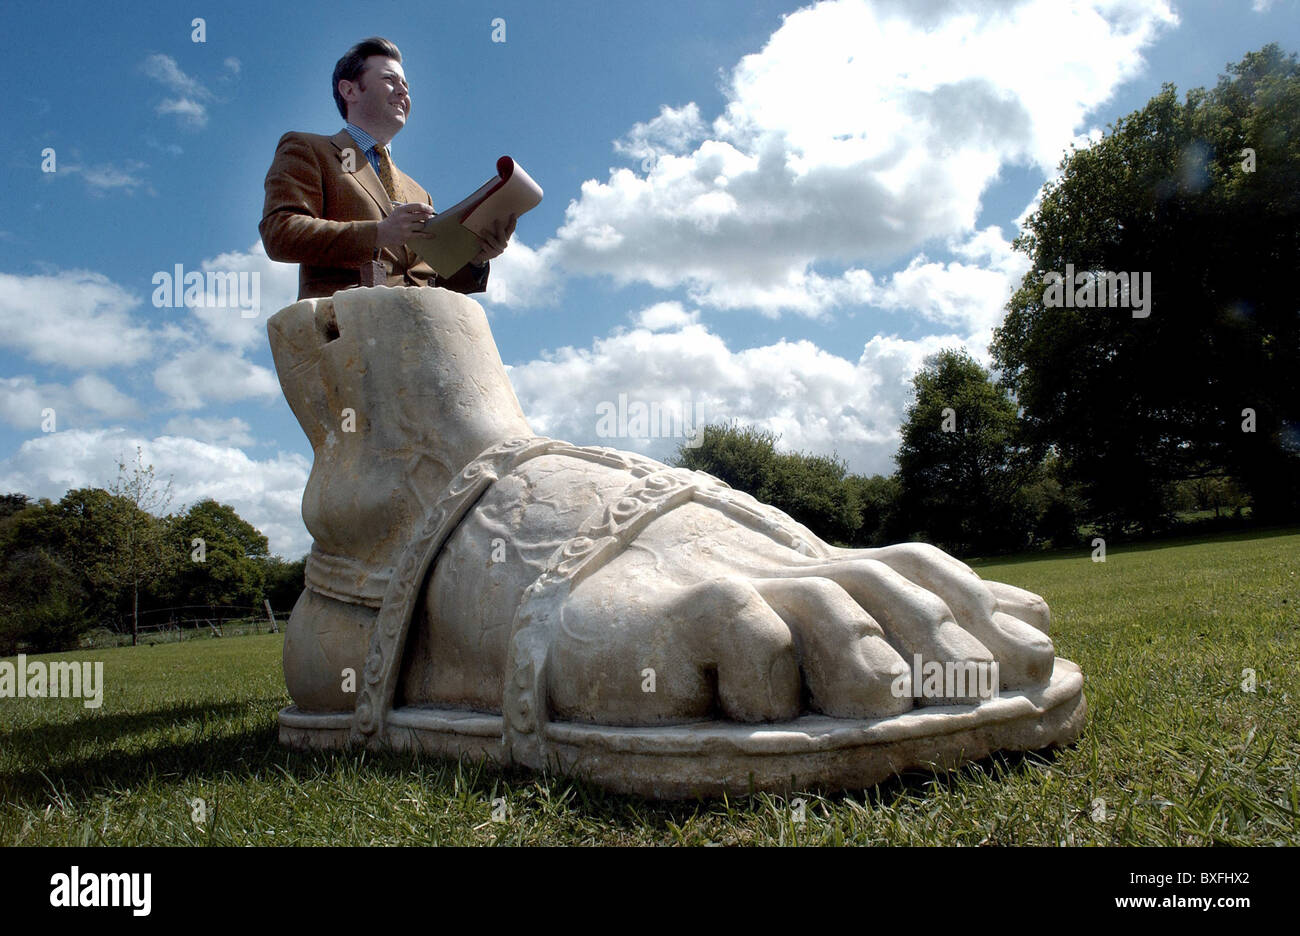 A Sotheby's auctioneer with a gigantic marble foot from a Roman statue at a sale of garden statuary Stock Photo